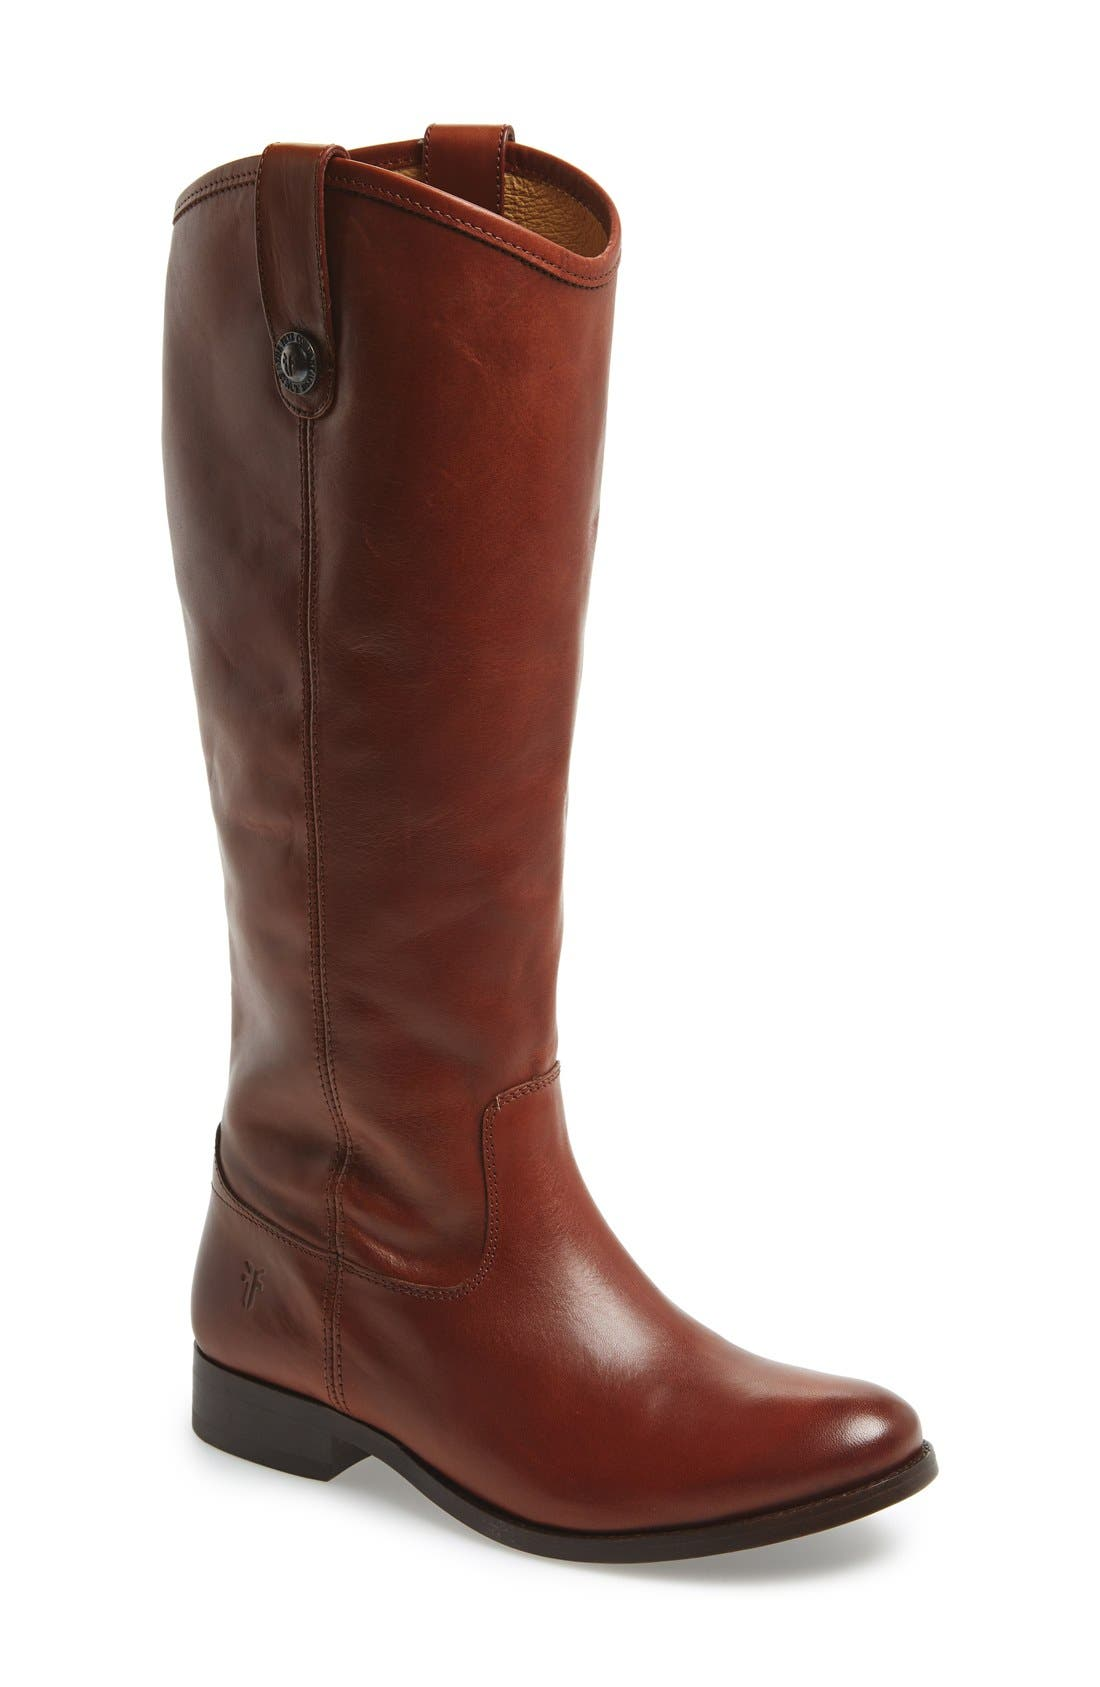 Women's Brown Pull-Up Boots, Boots for Women | Nordstrom